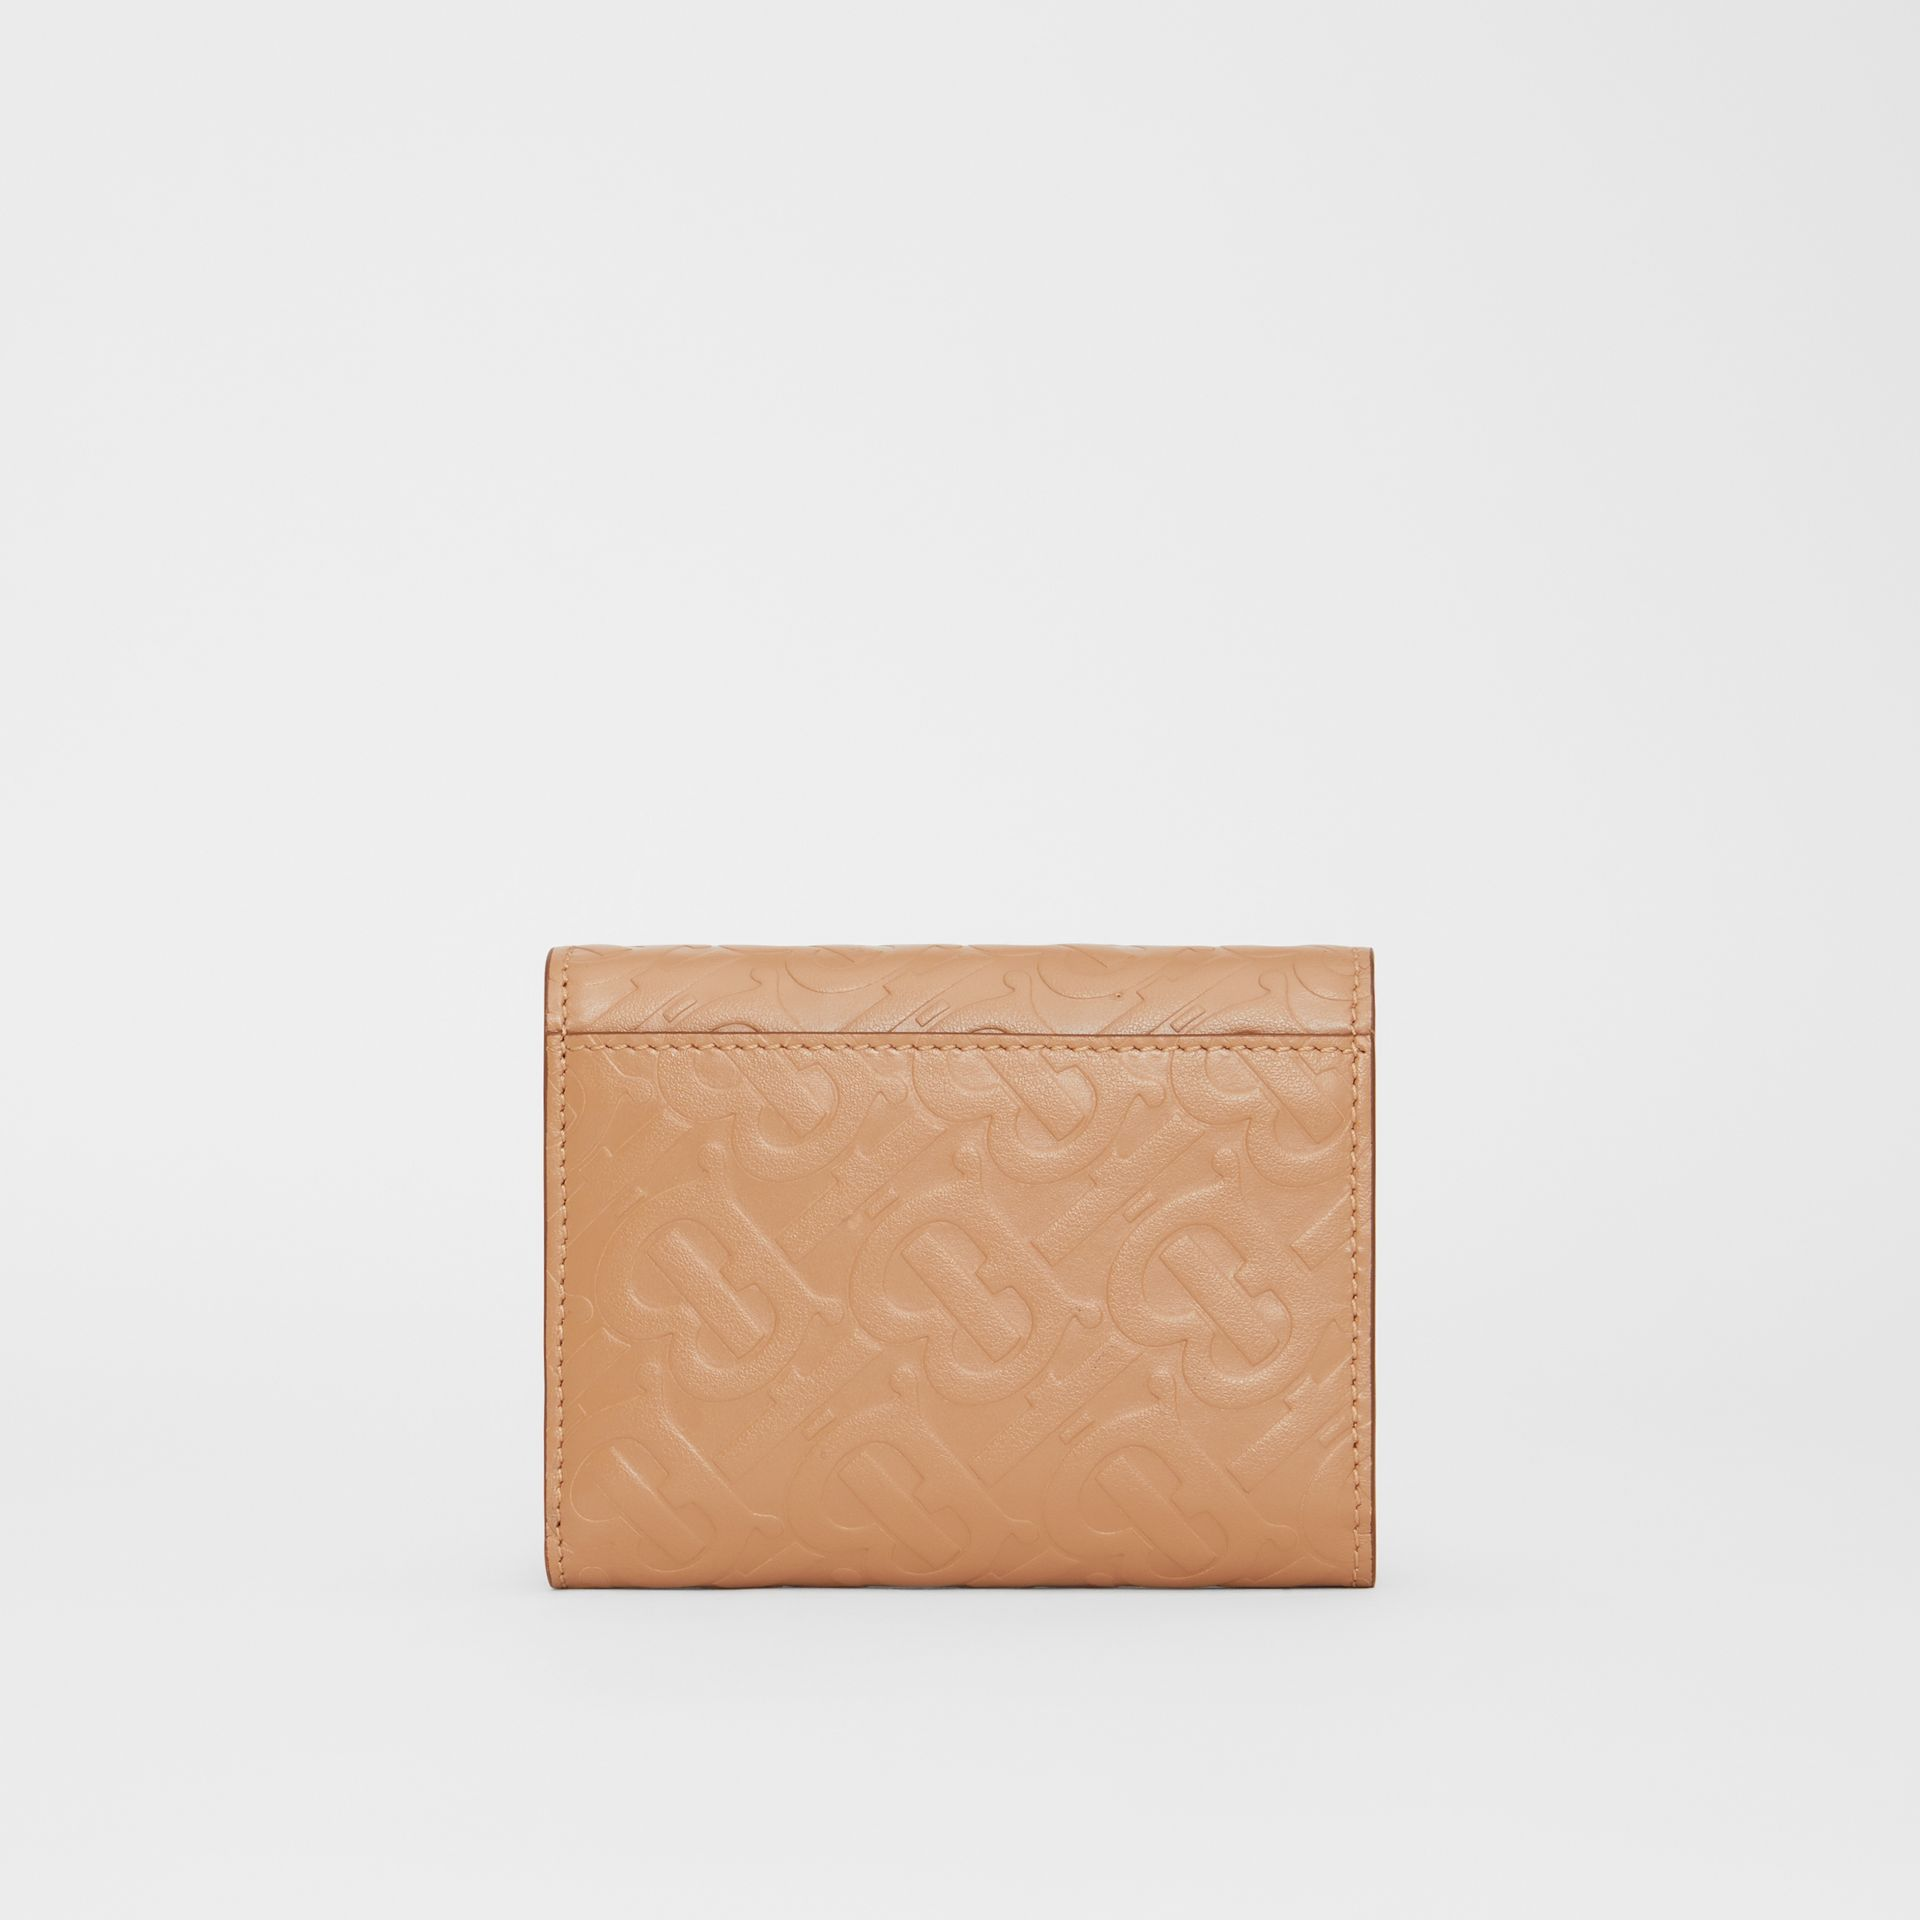 Small Monogram Leather Folding Wallet in Light Camel - Women | Burberry - gallery image 4